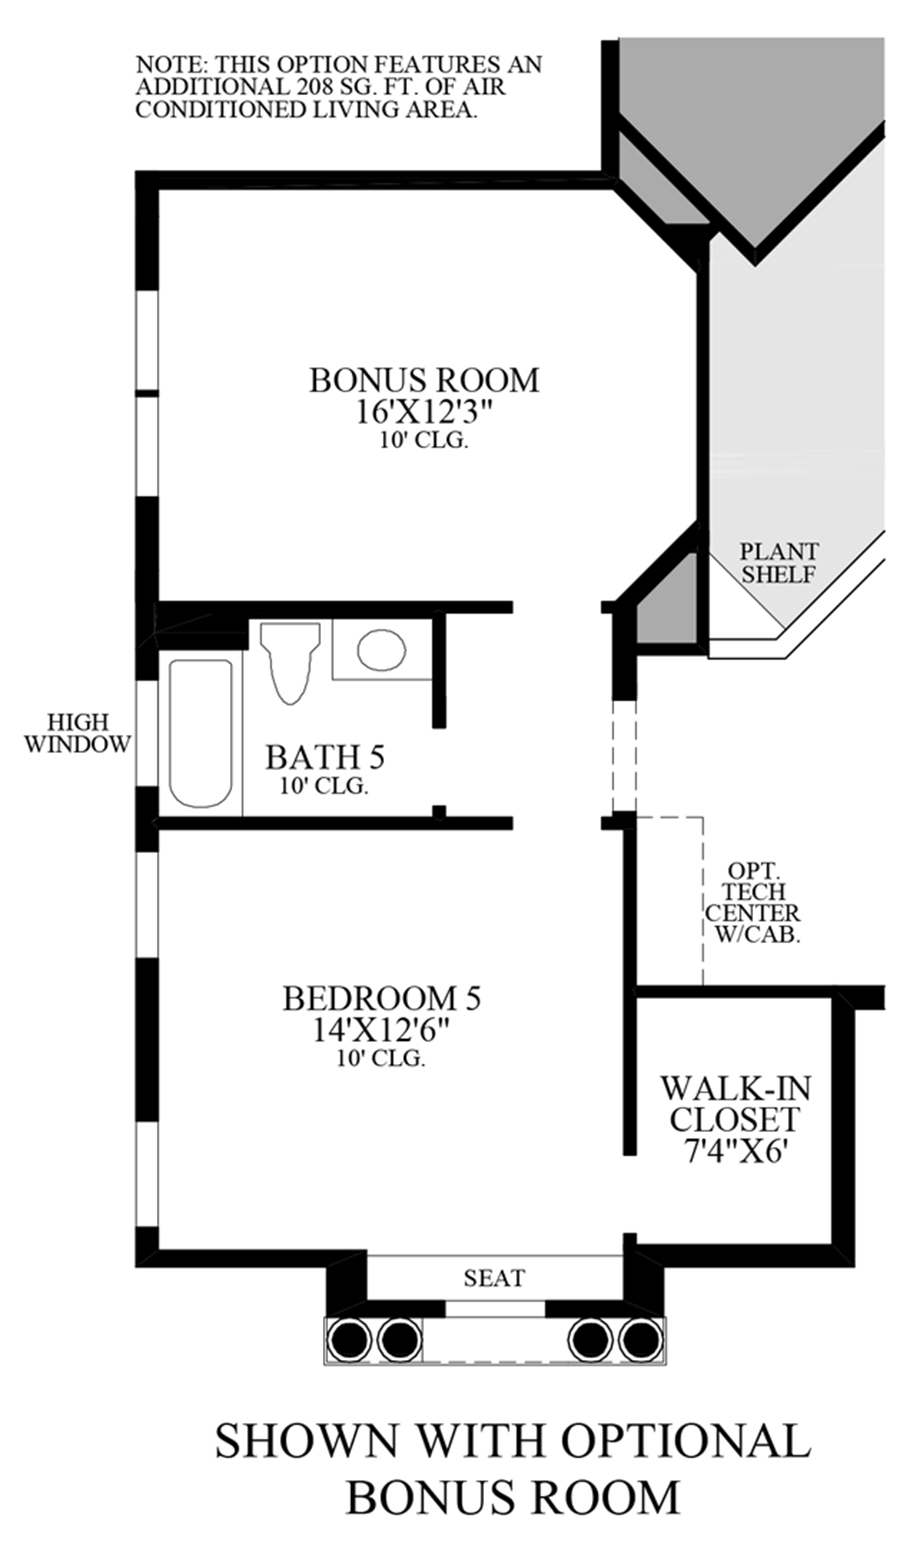 Optional Bonus Room Floor Plan